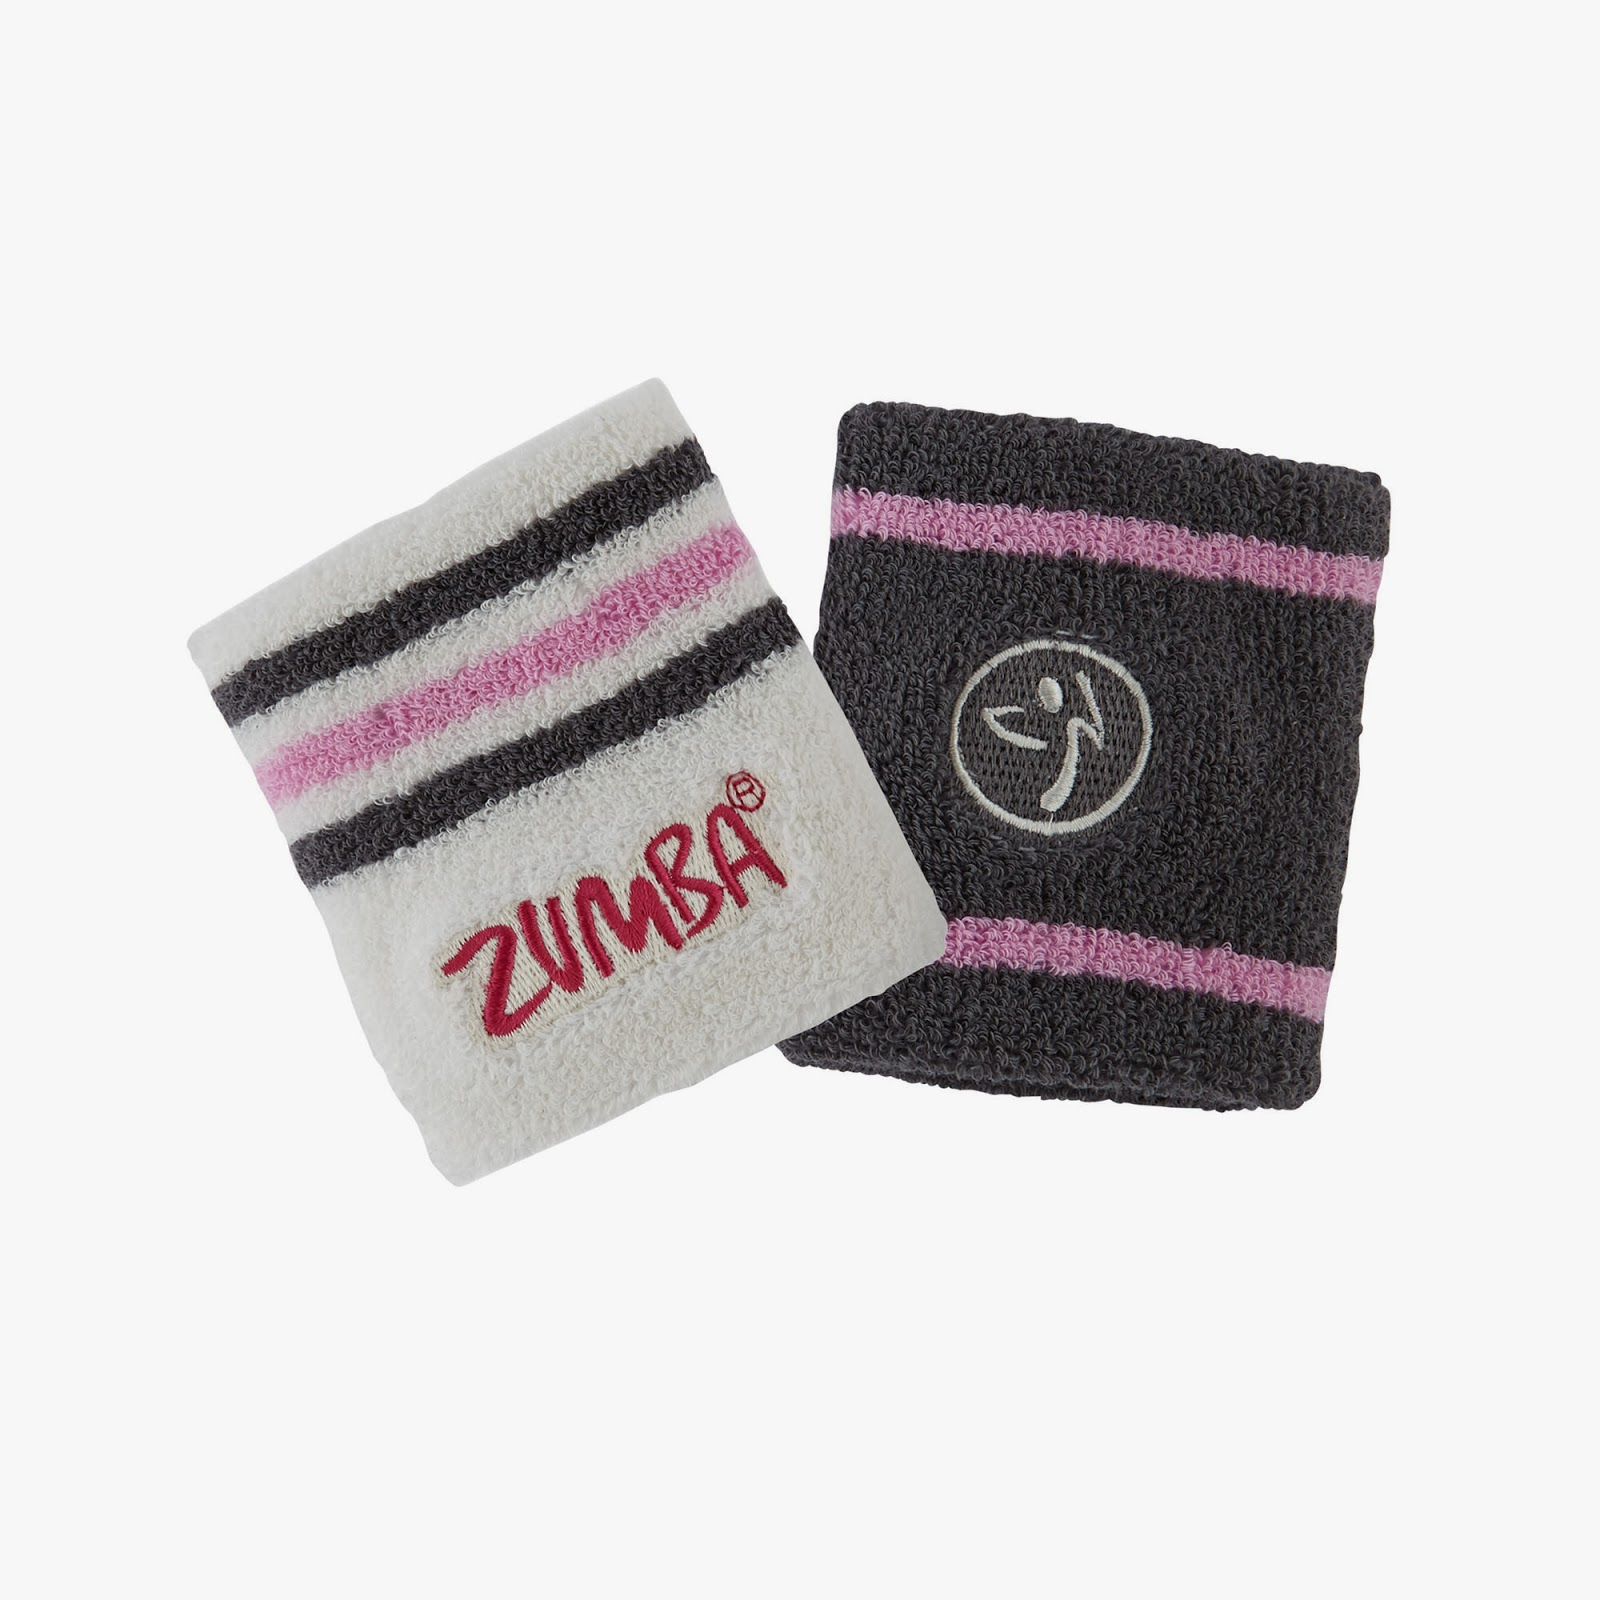 http://www.zumba.com/en-US/store-zin/US/product/sweat-my-wristbands?color=Positively%20Pinktronic